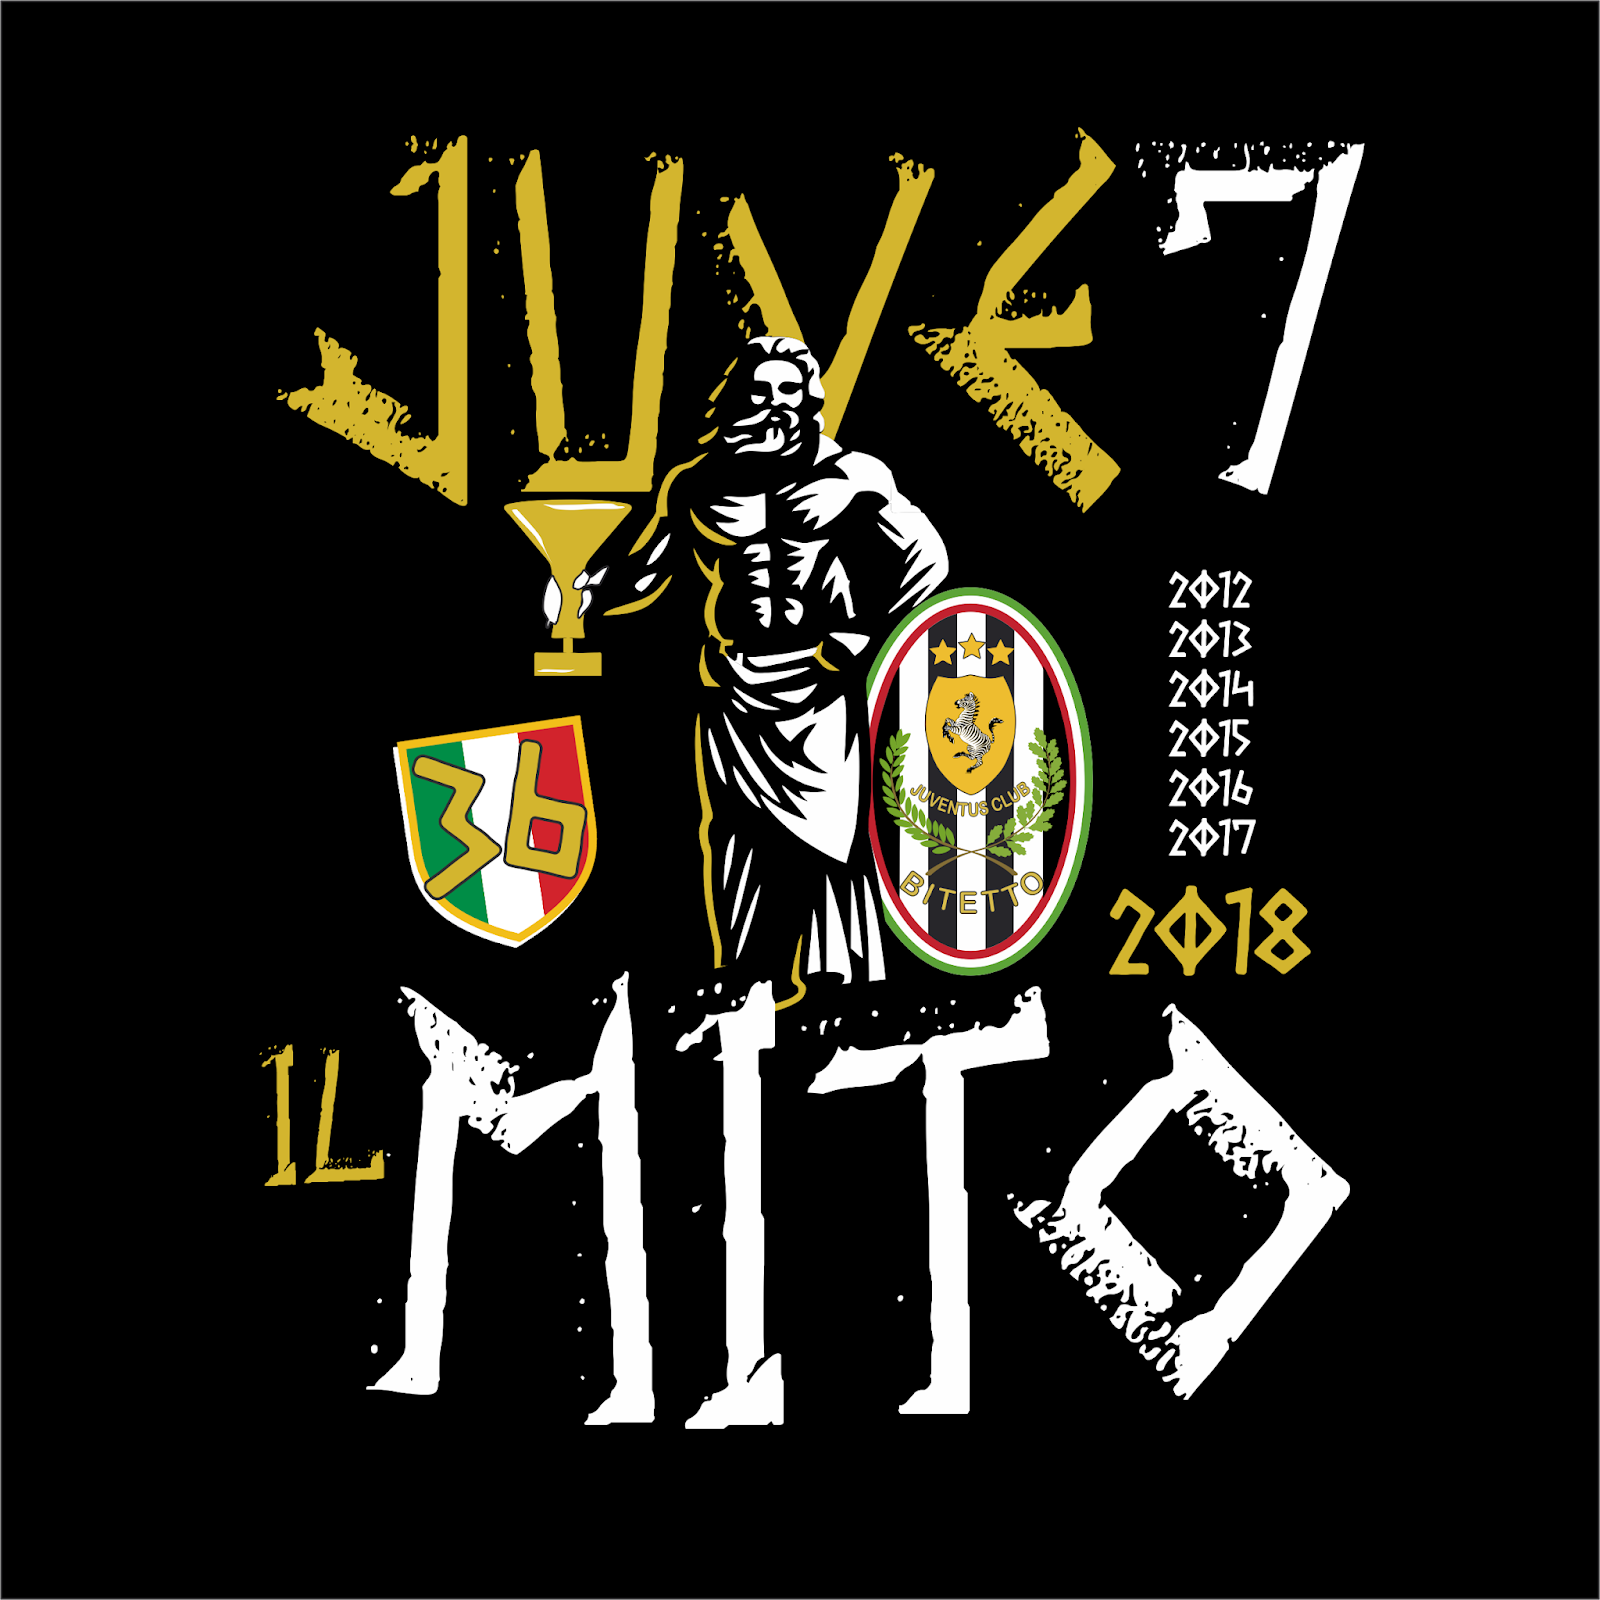 Juventus Official Fan Club Bitetto Gianni Umberto Agnelli T